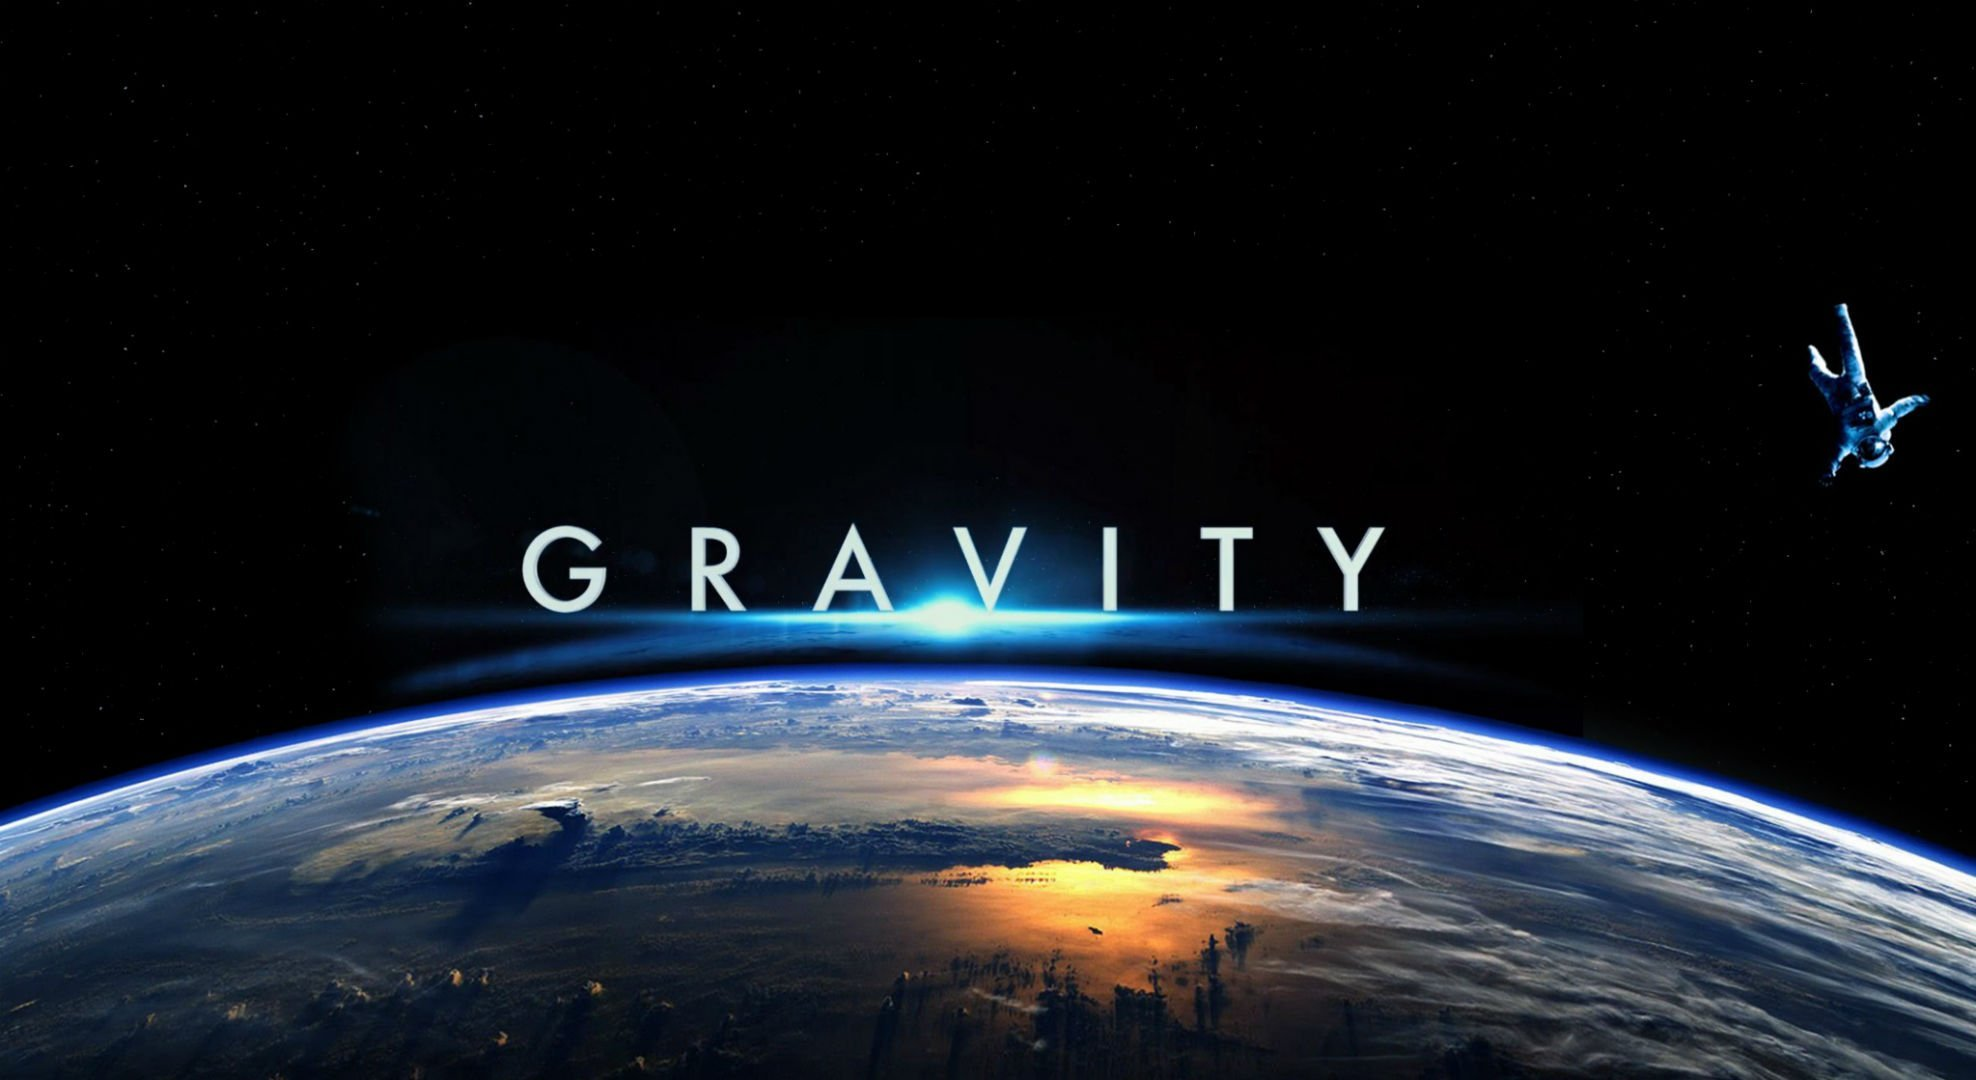 Gravity wallpapers Comics HQ Gravity pictures 4K Wallpapers 2019 1976x1080